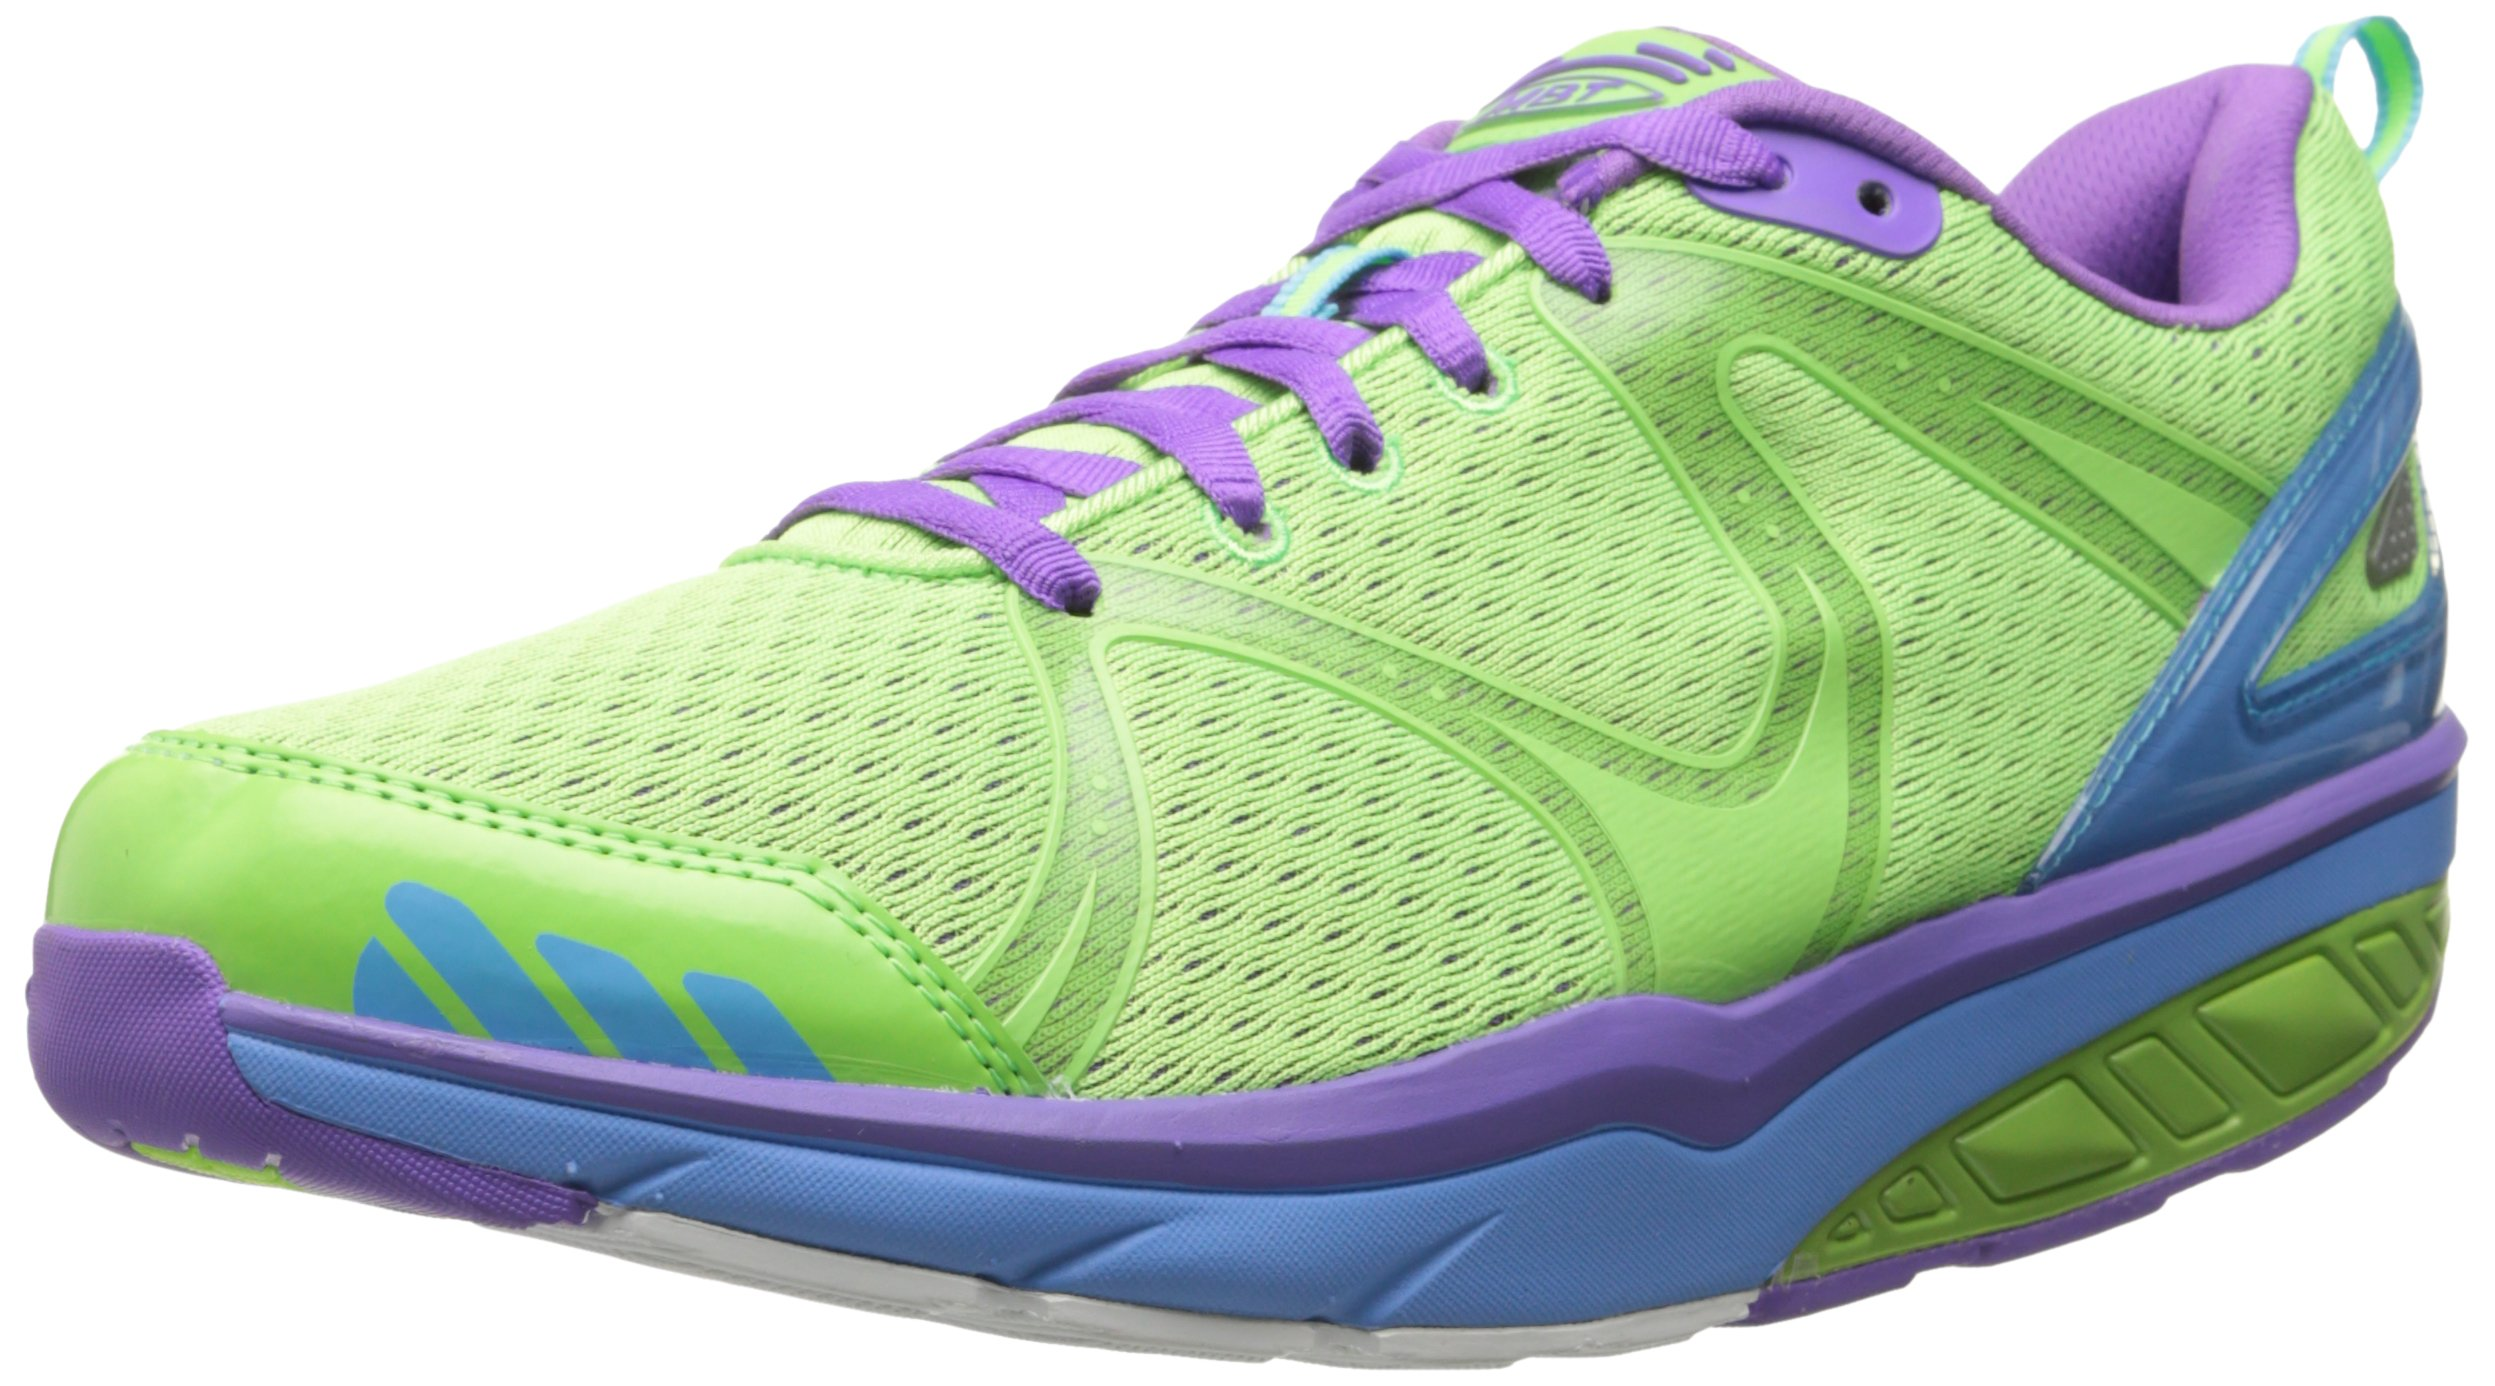 MBT Women's Afiya 5 Athletic Oxford , Neon Lime/White/Neon Scuba ,36 EU/5-5.5 M US by MBT